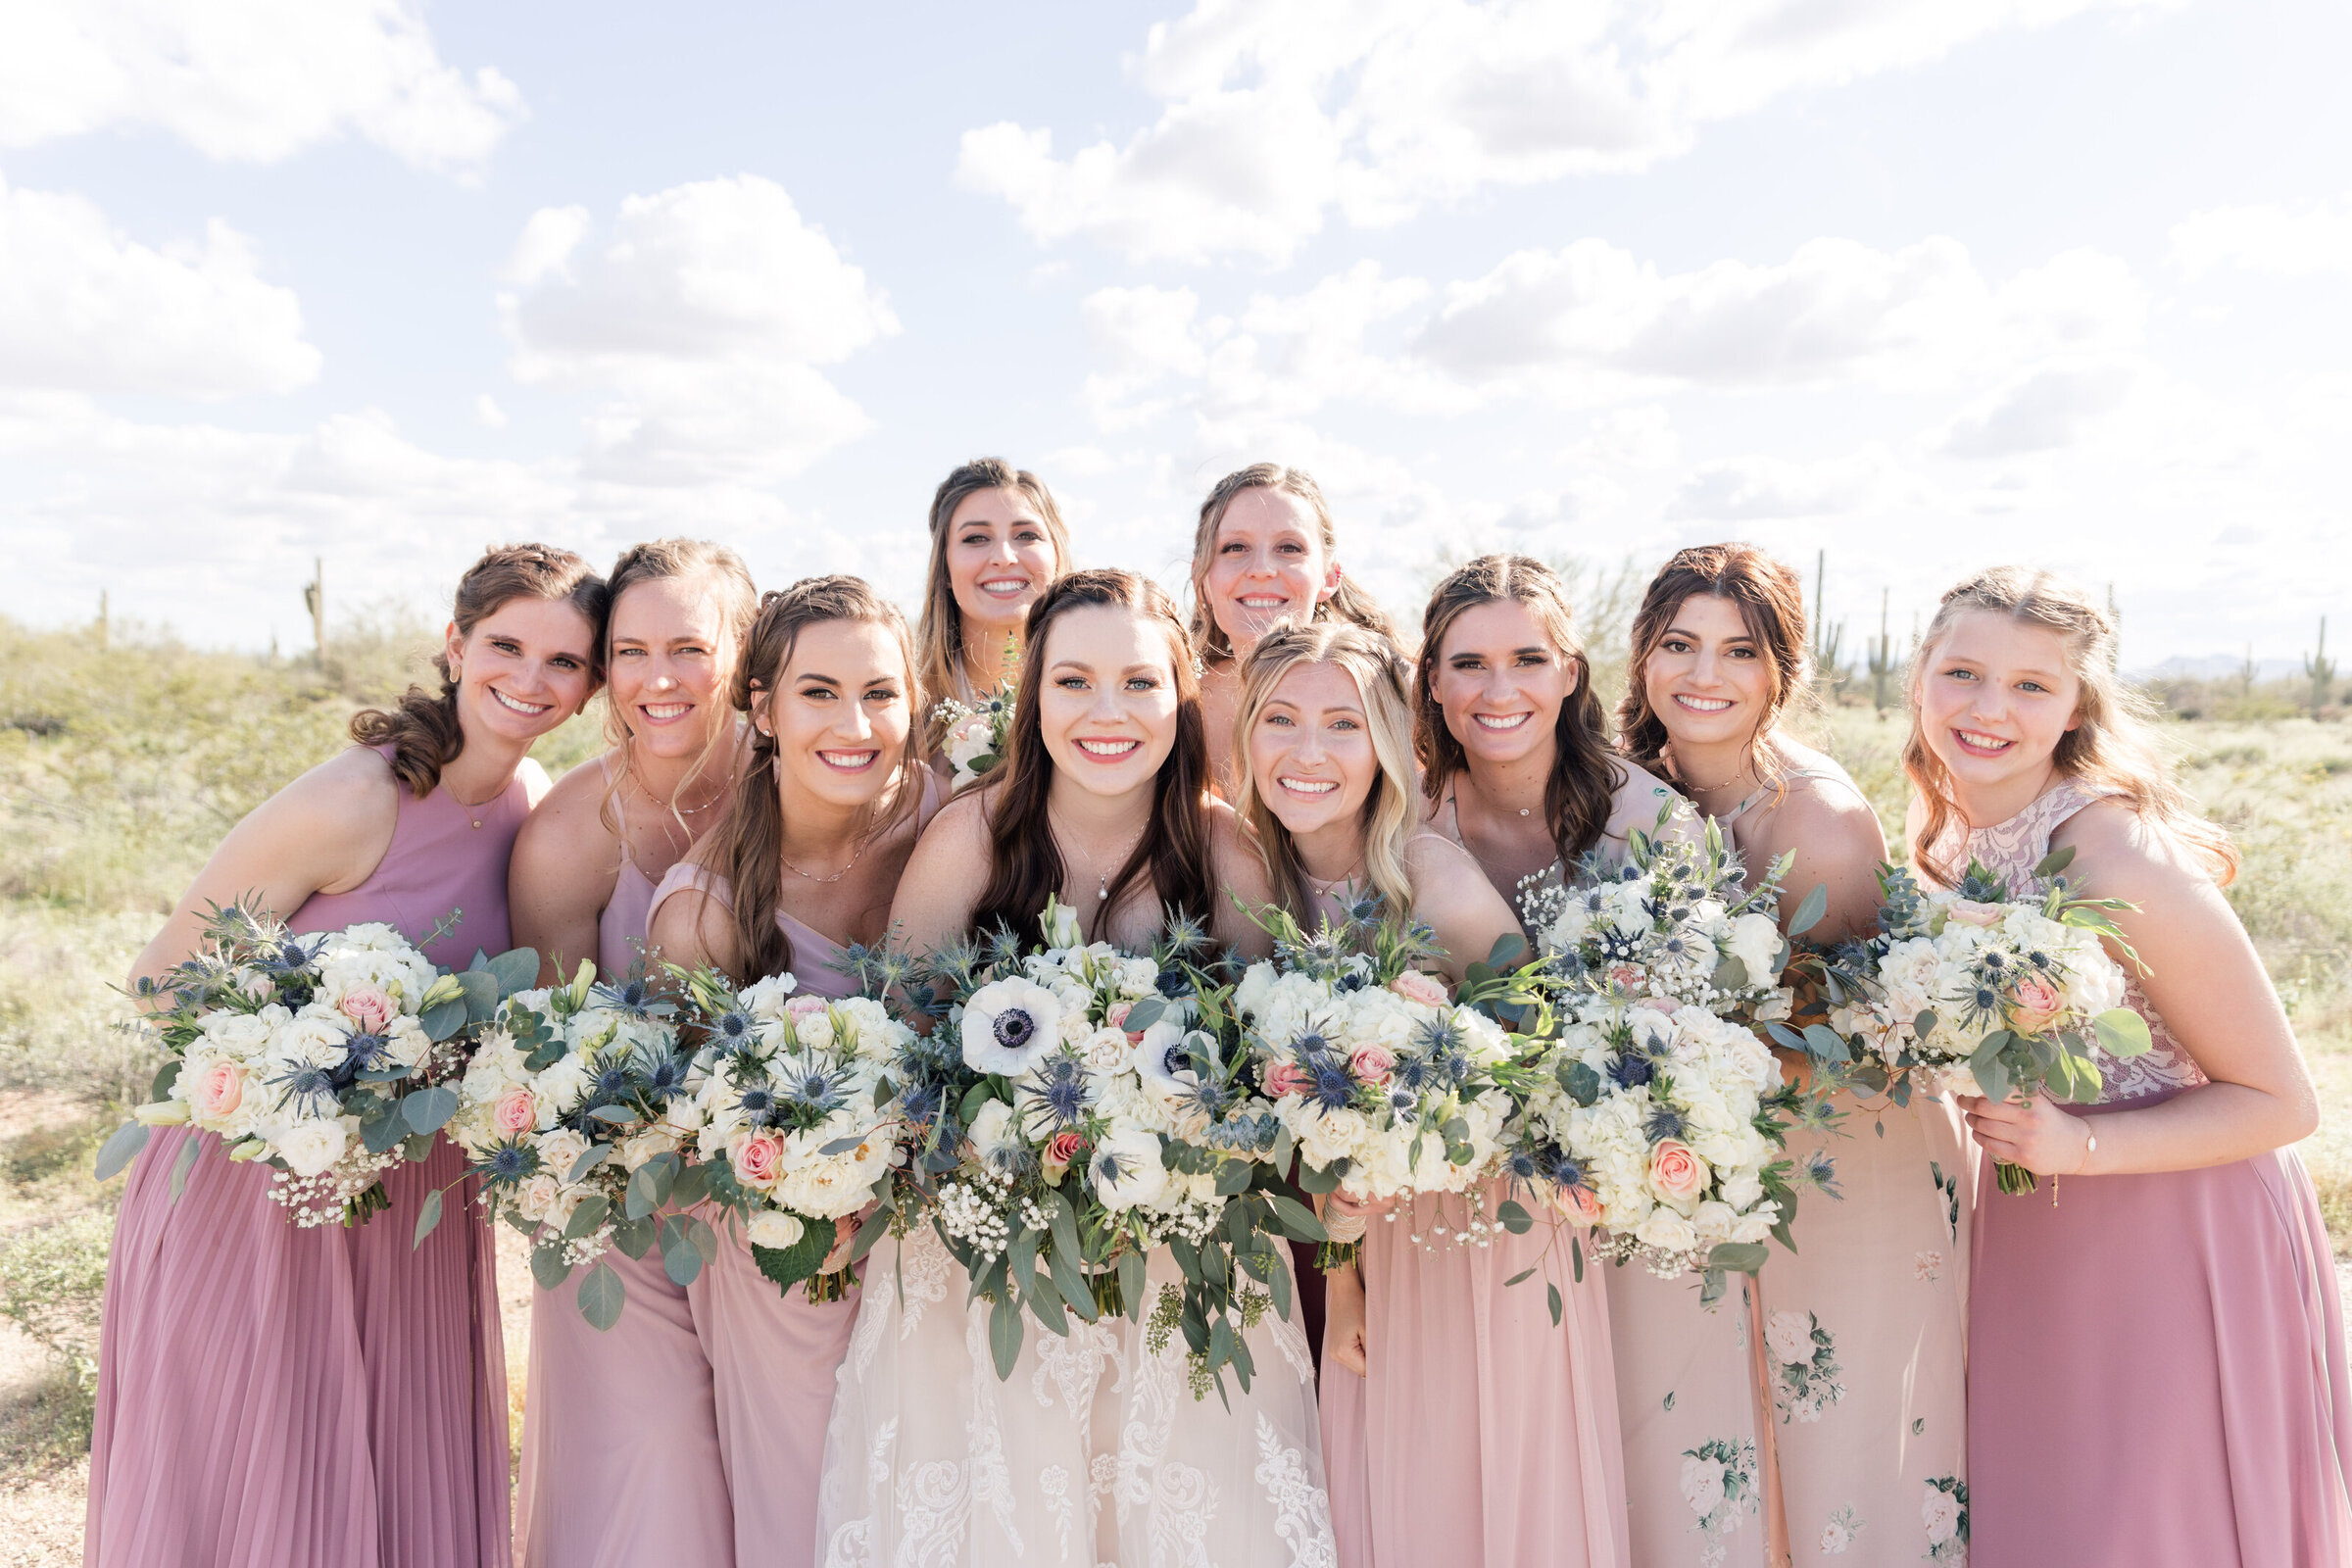 Group of bridesmaids huddled together for a picture